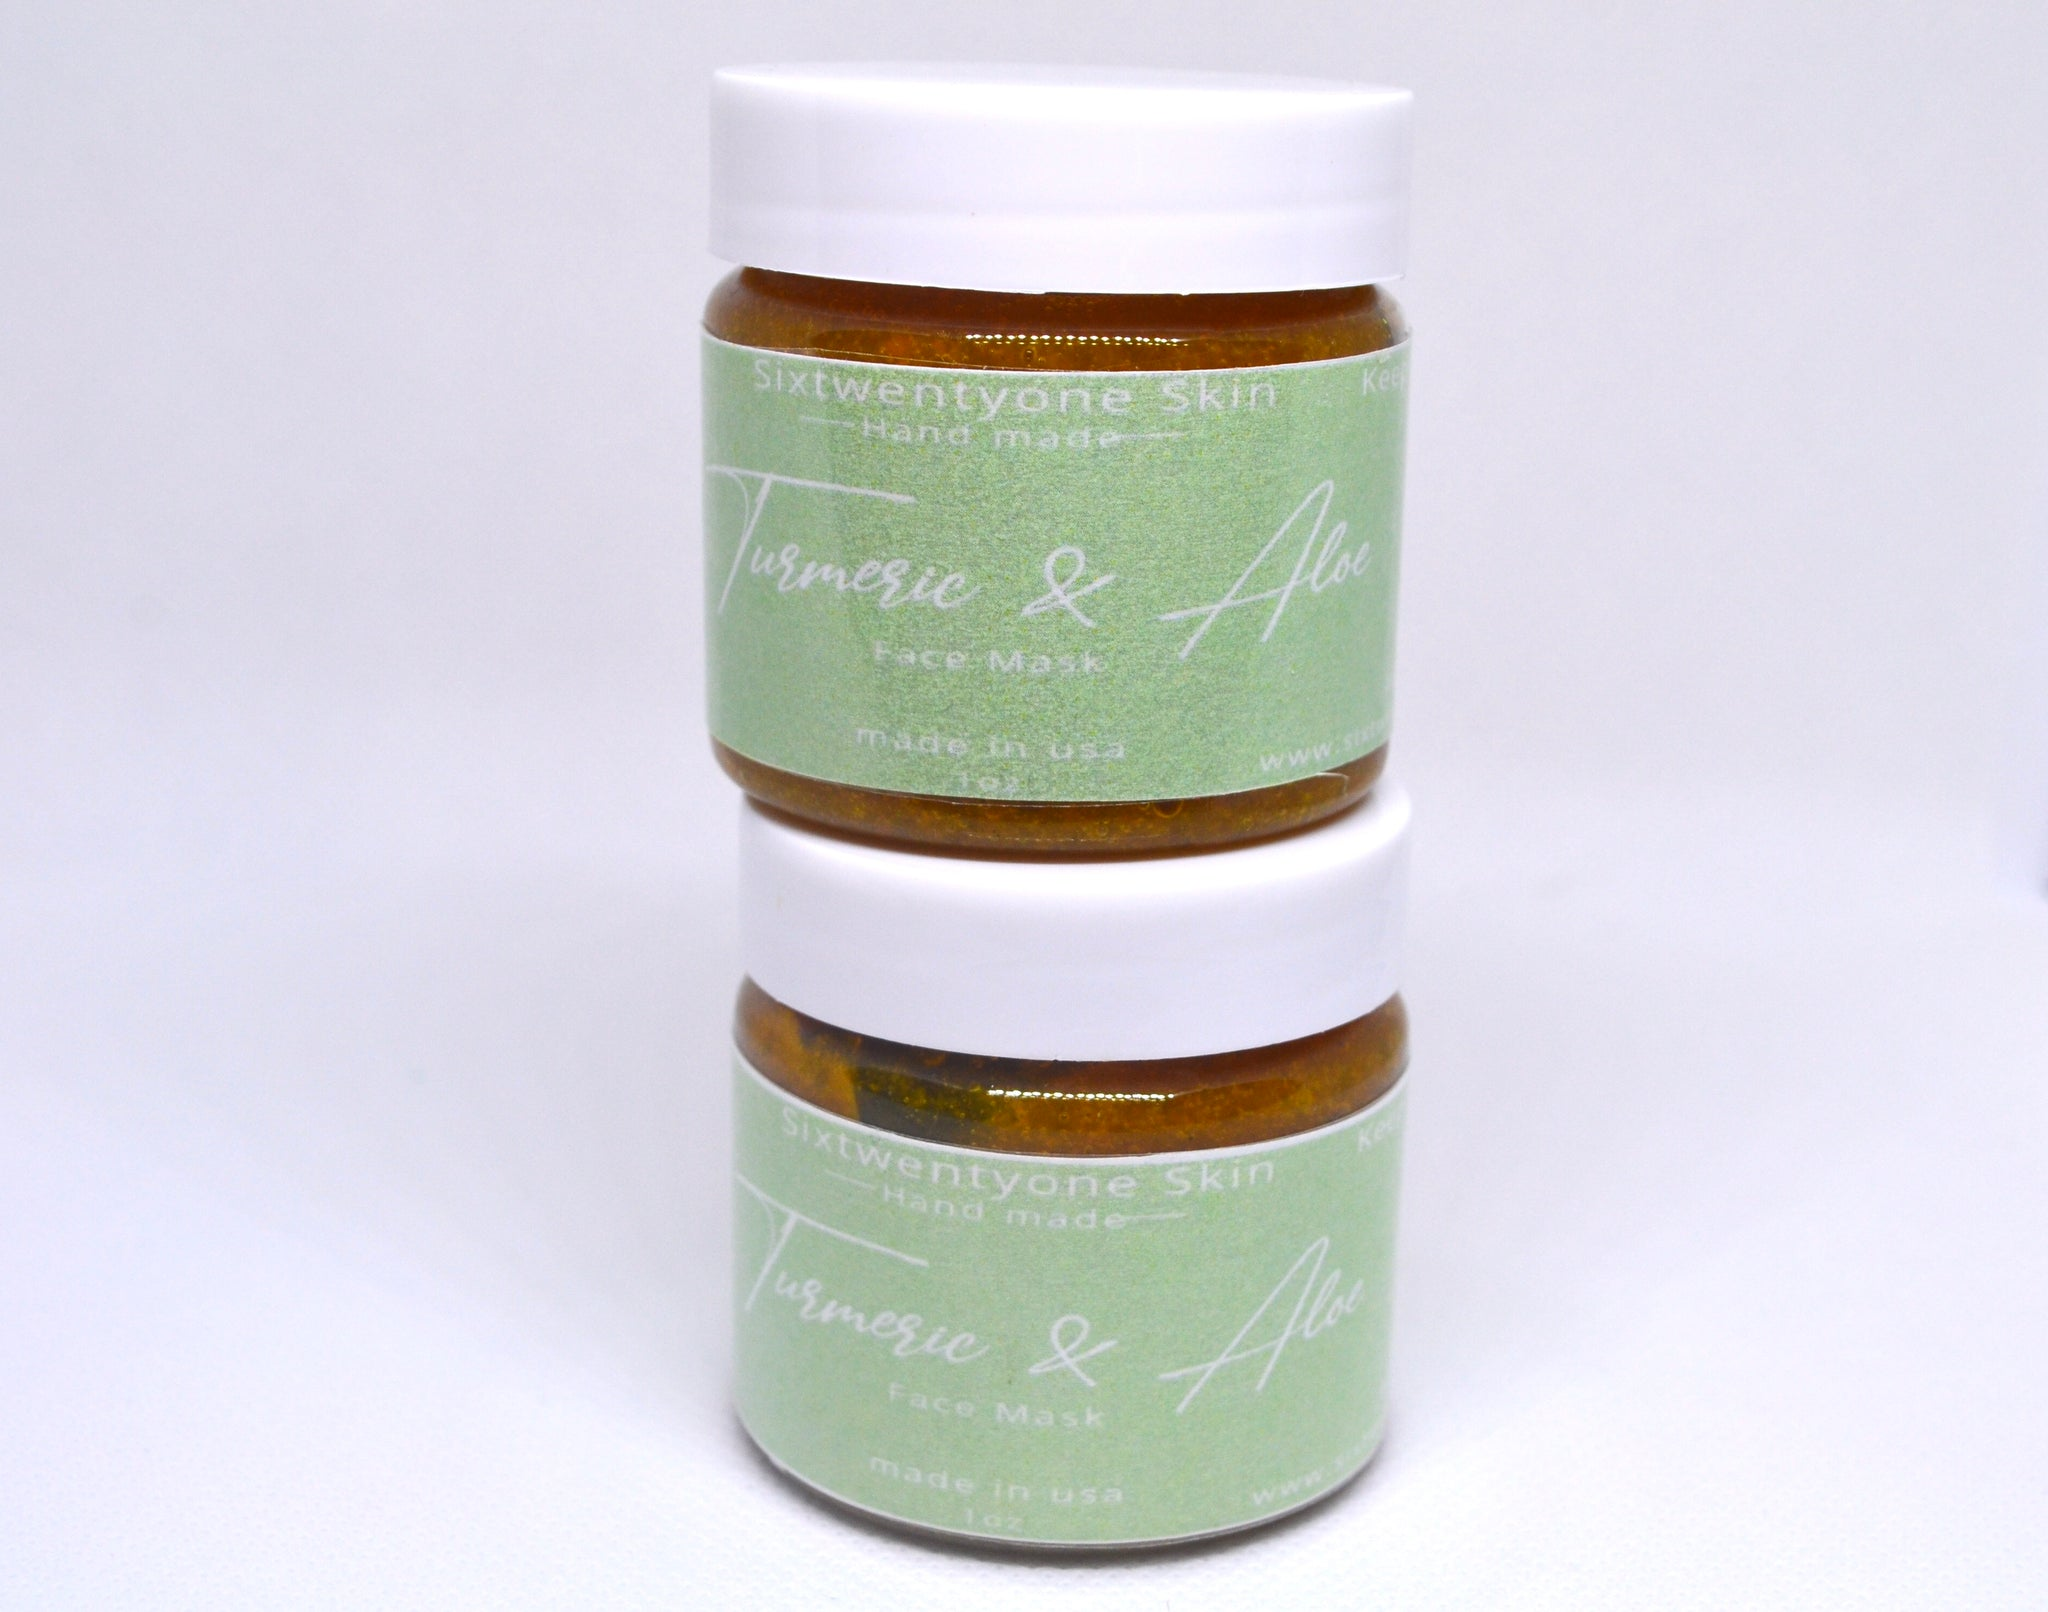 SSkin Tumeric and Aloe Glow Mask